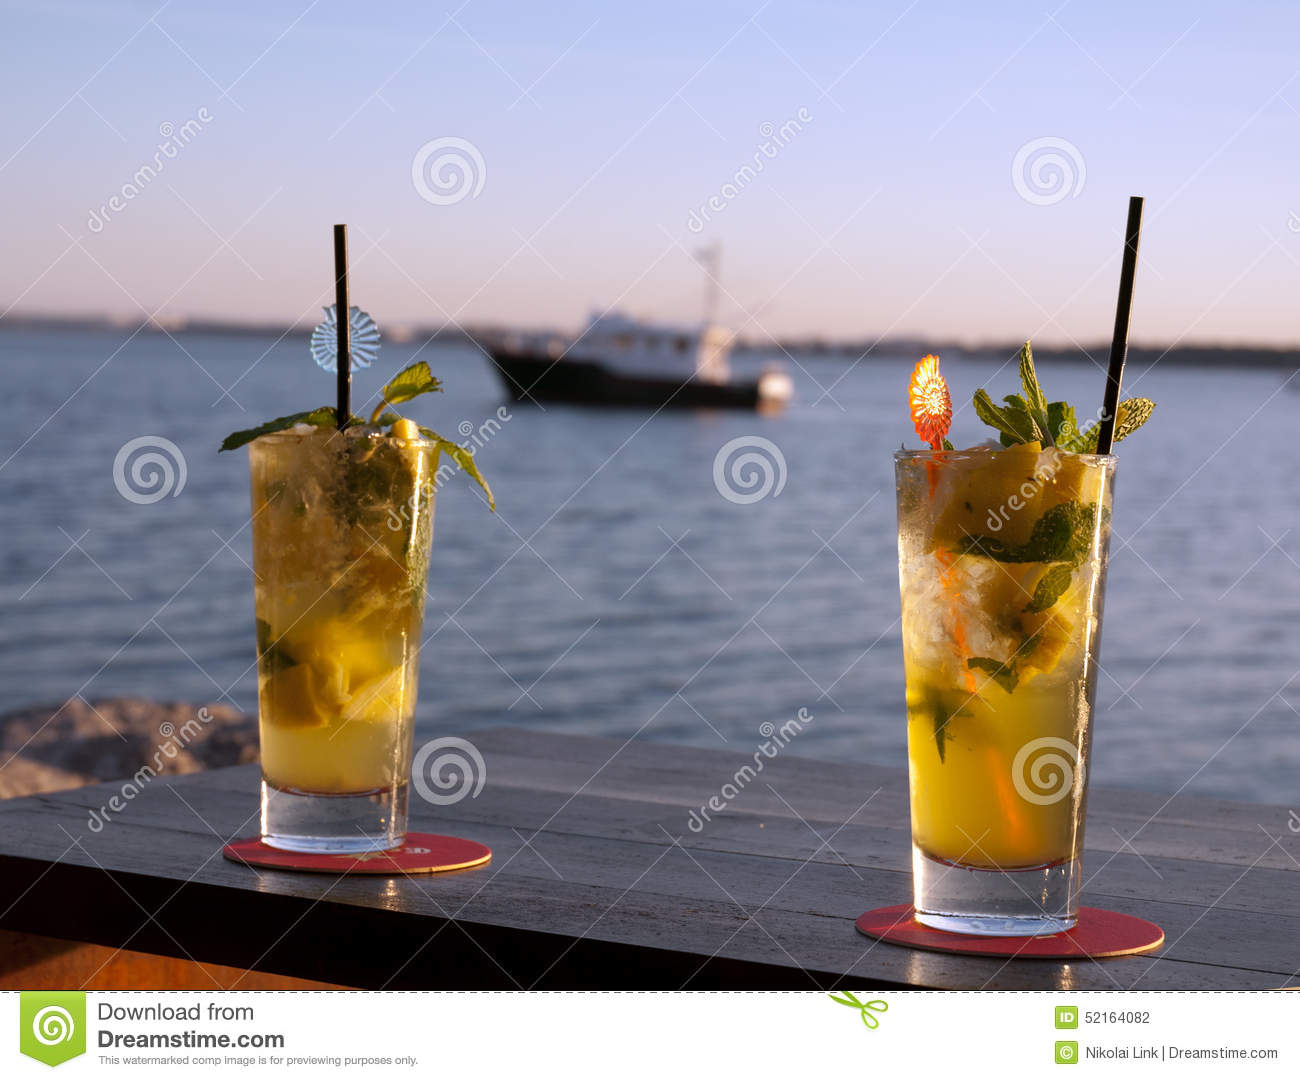 Sundowner cocktails with blurred boat